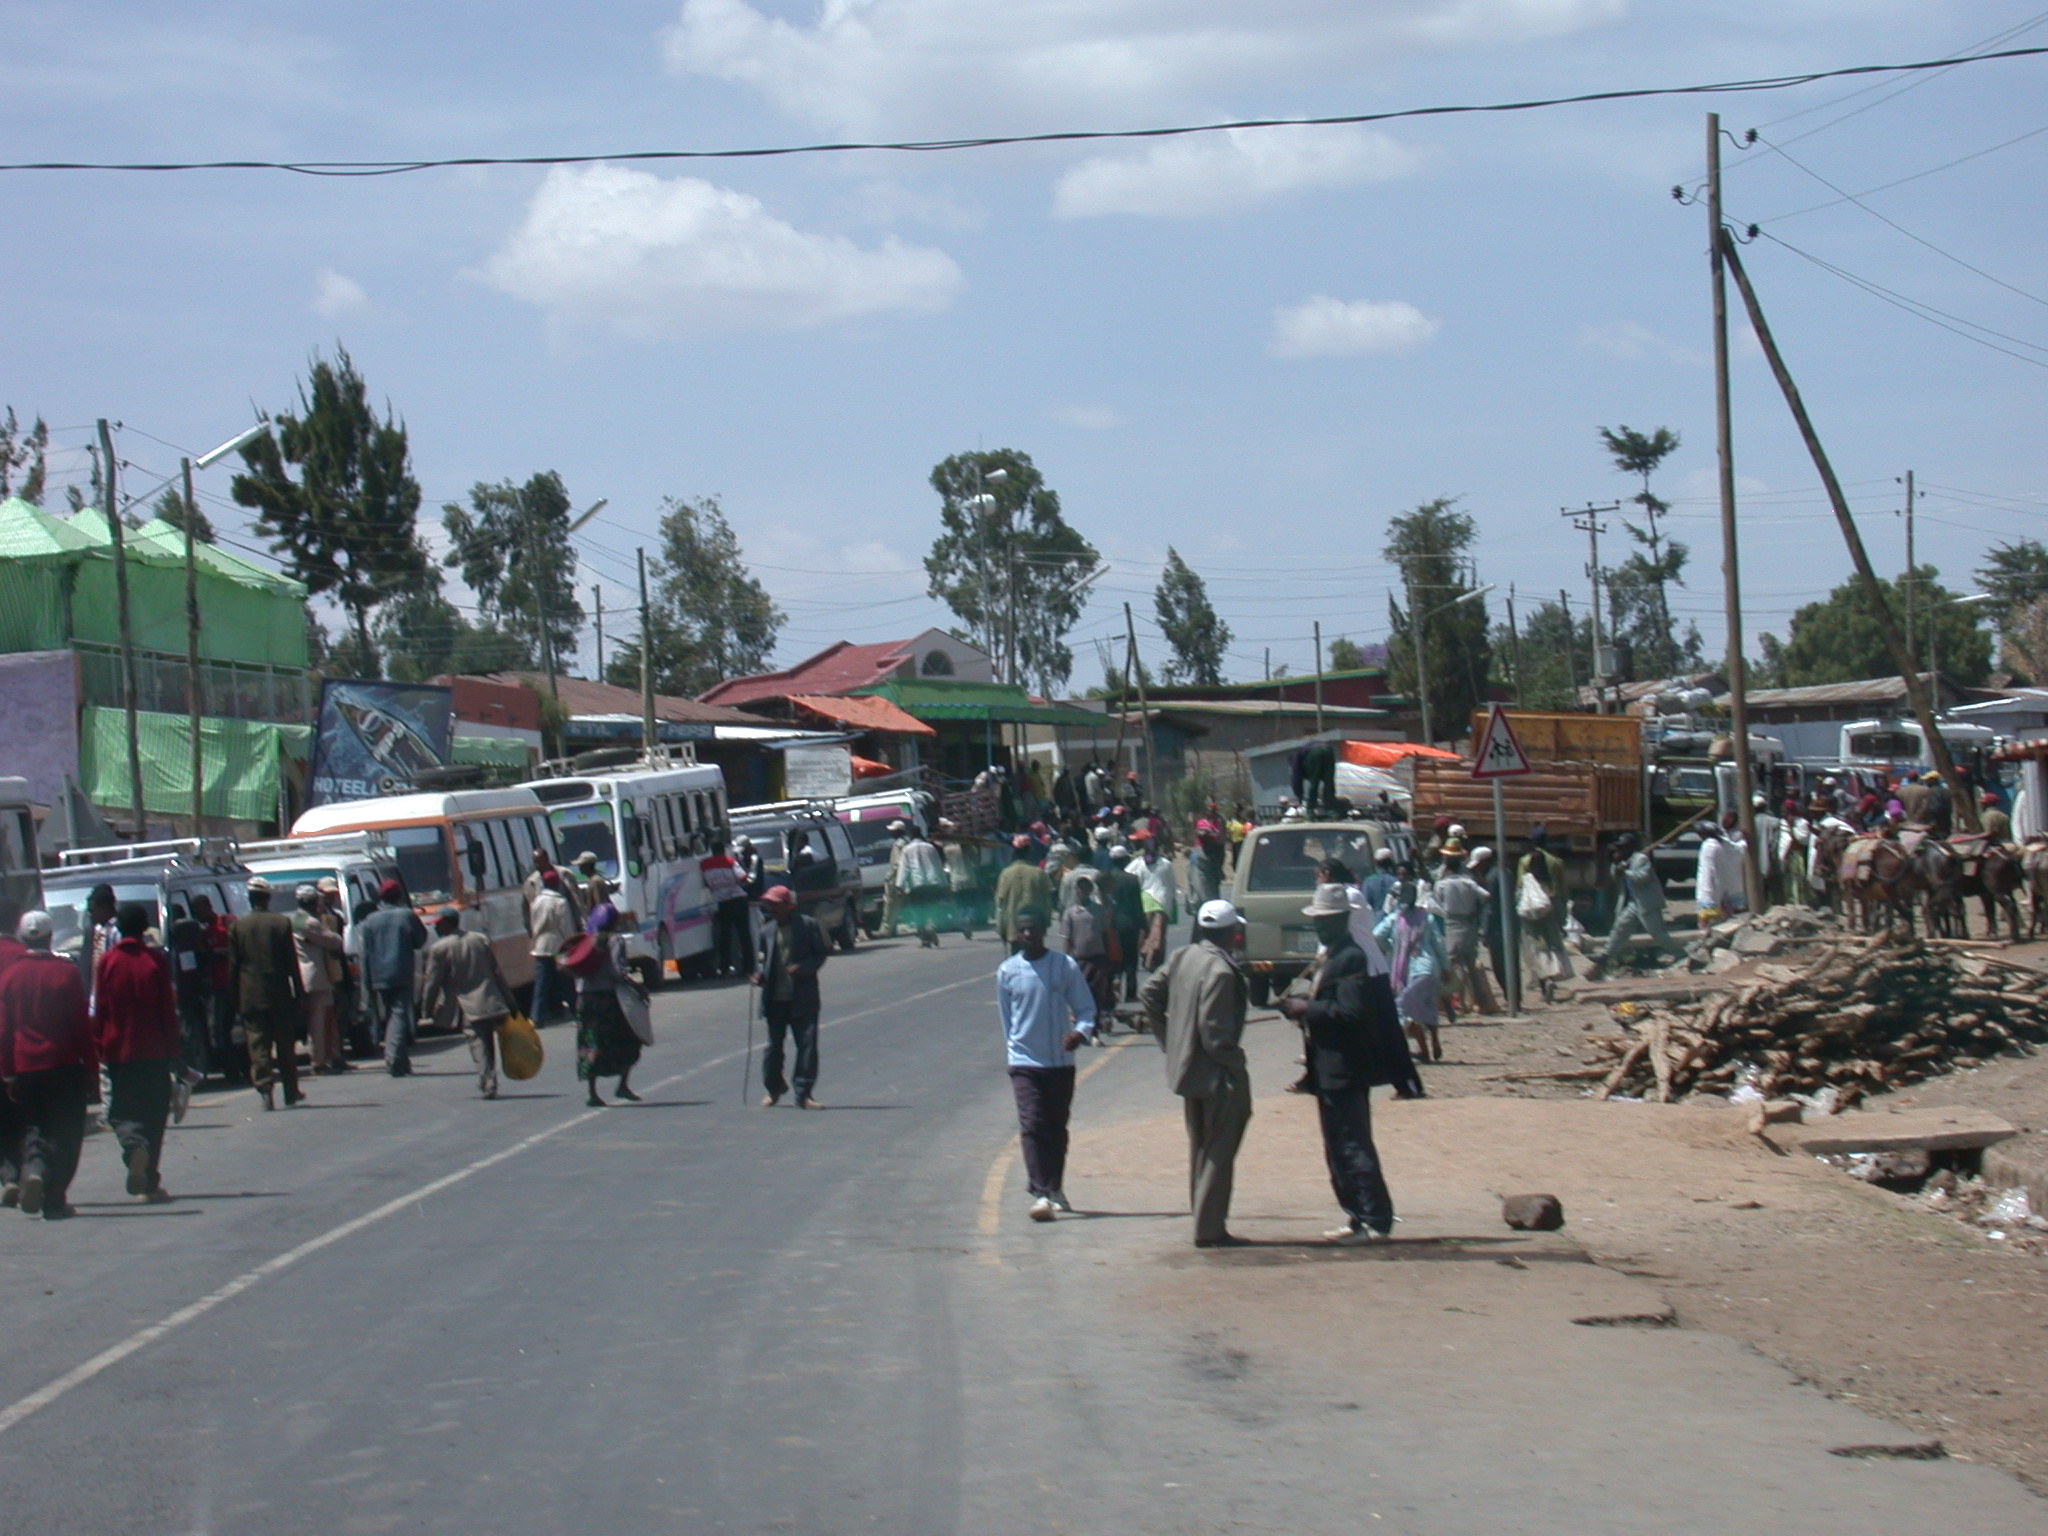 Typical Small Town Outside Addis Ababa, Ethiopia